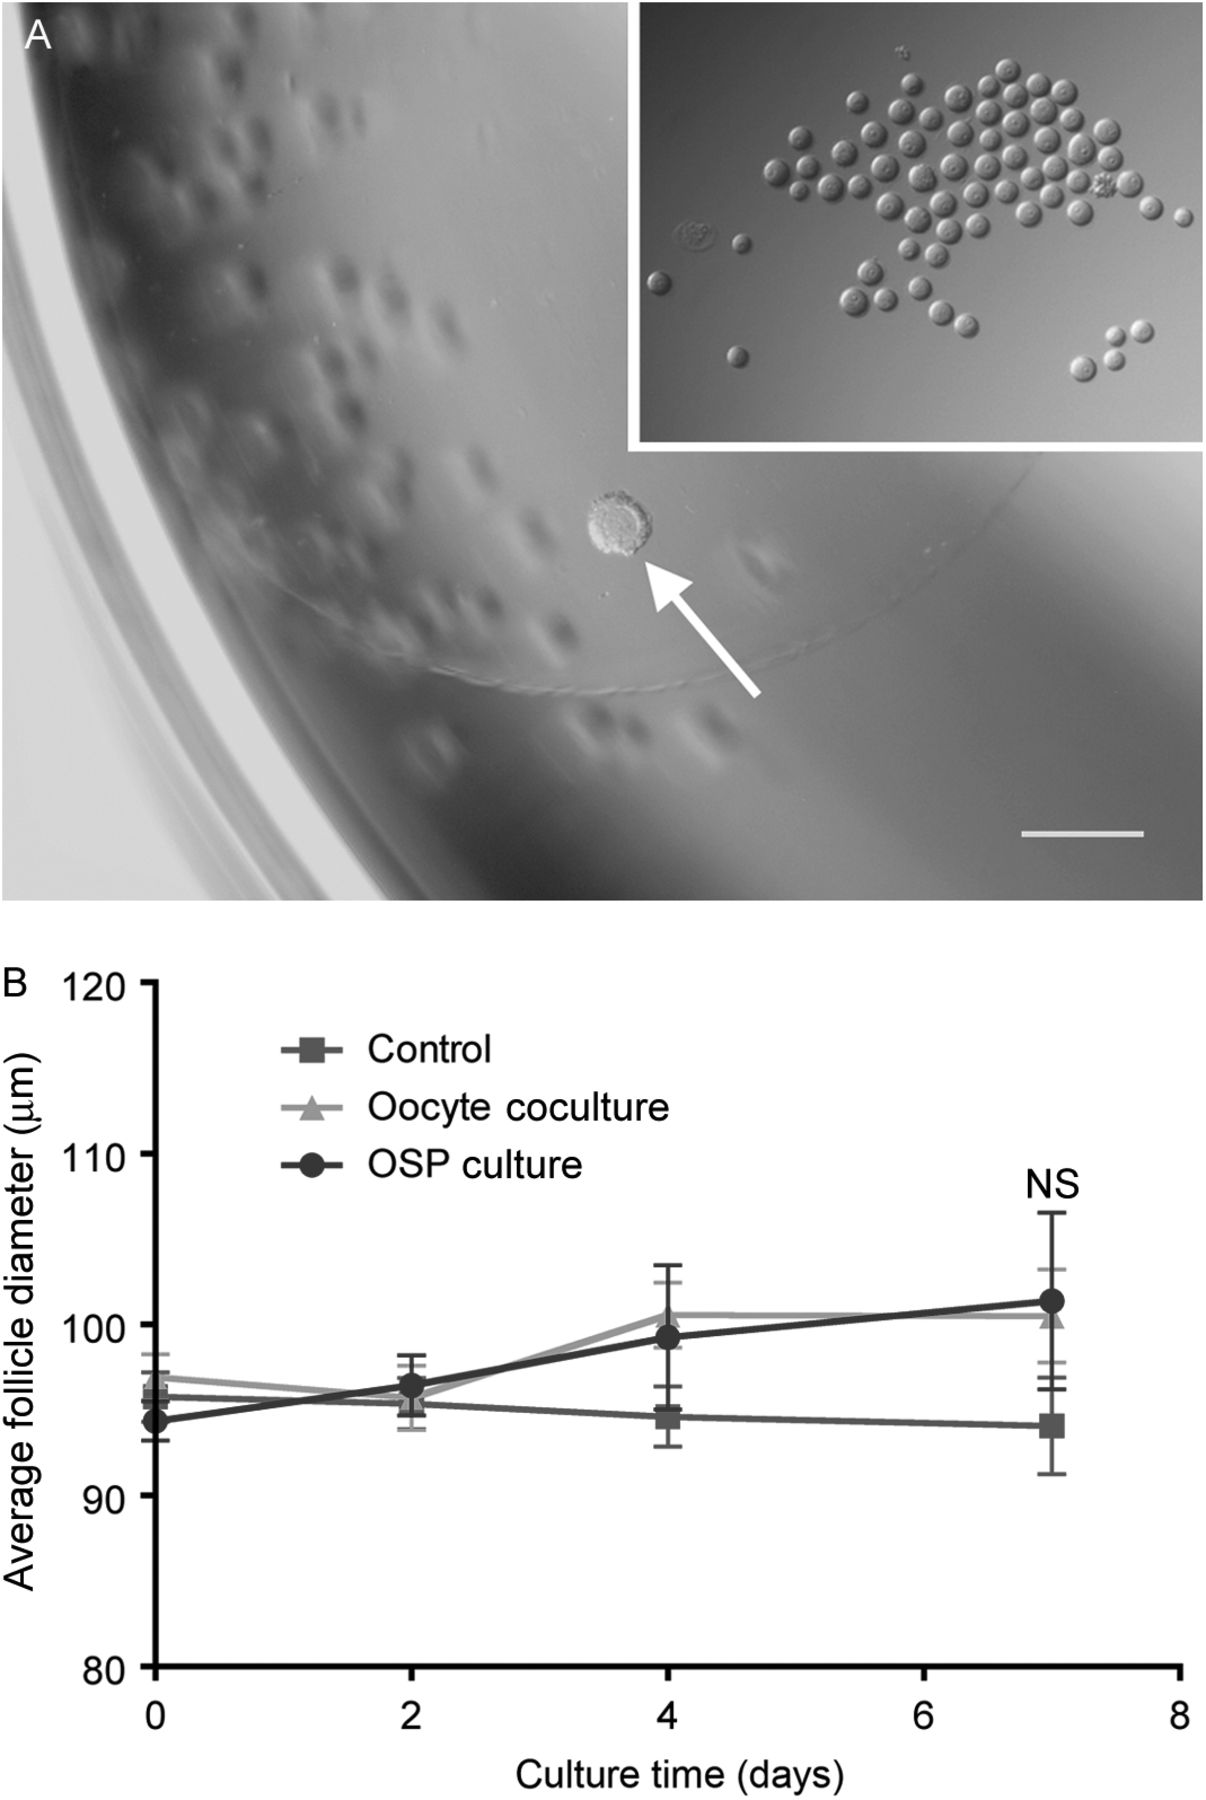 Multiple follicle culture supports primary follicle growth